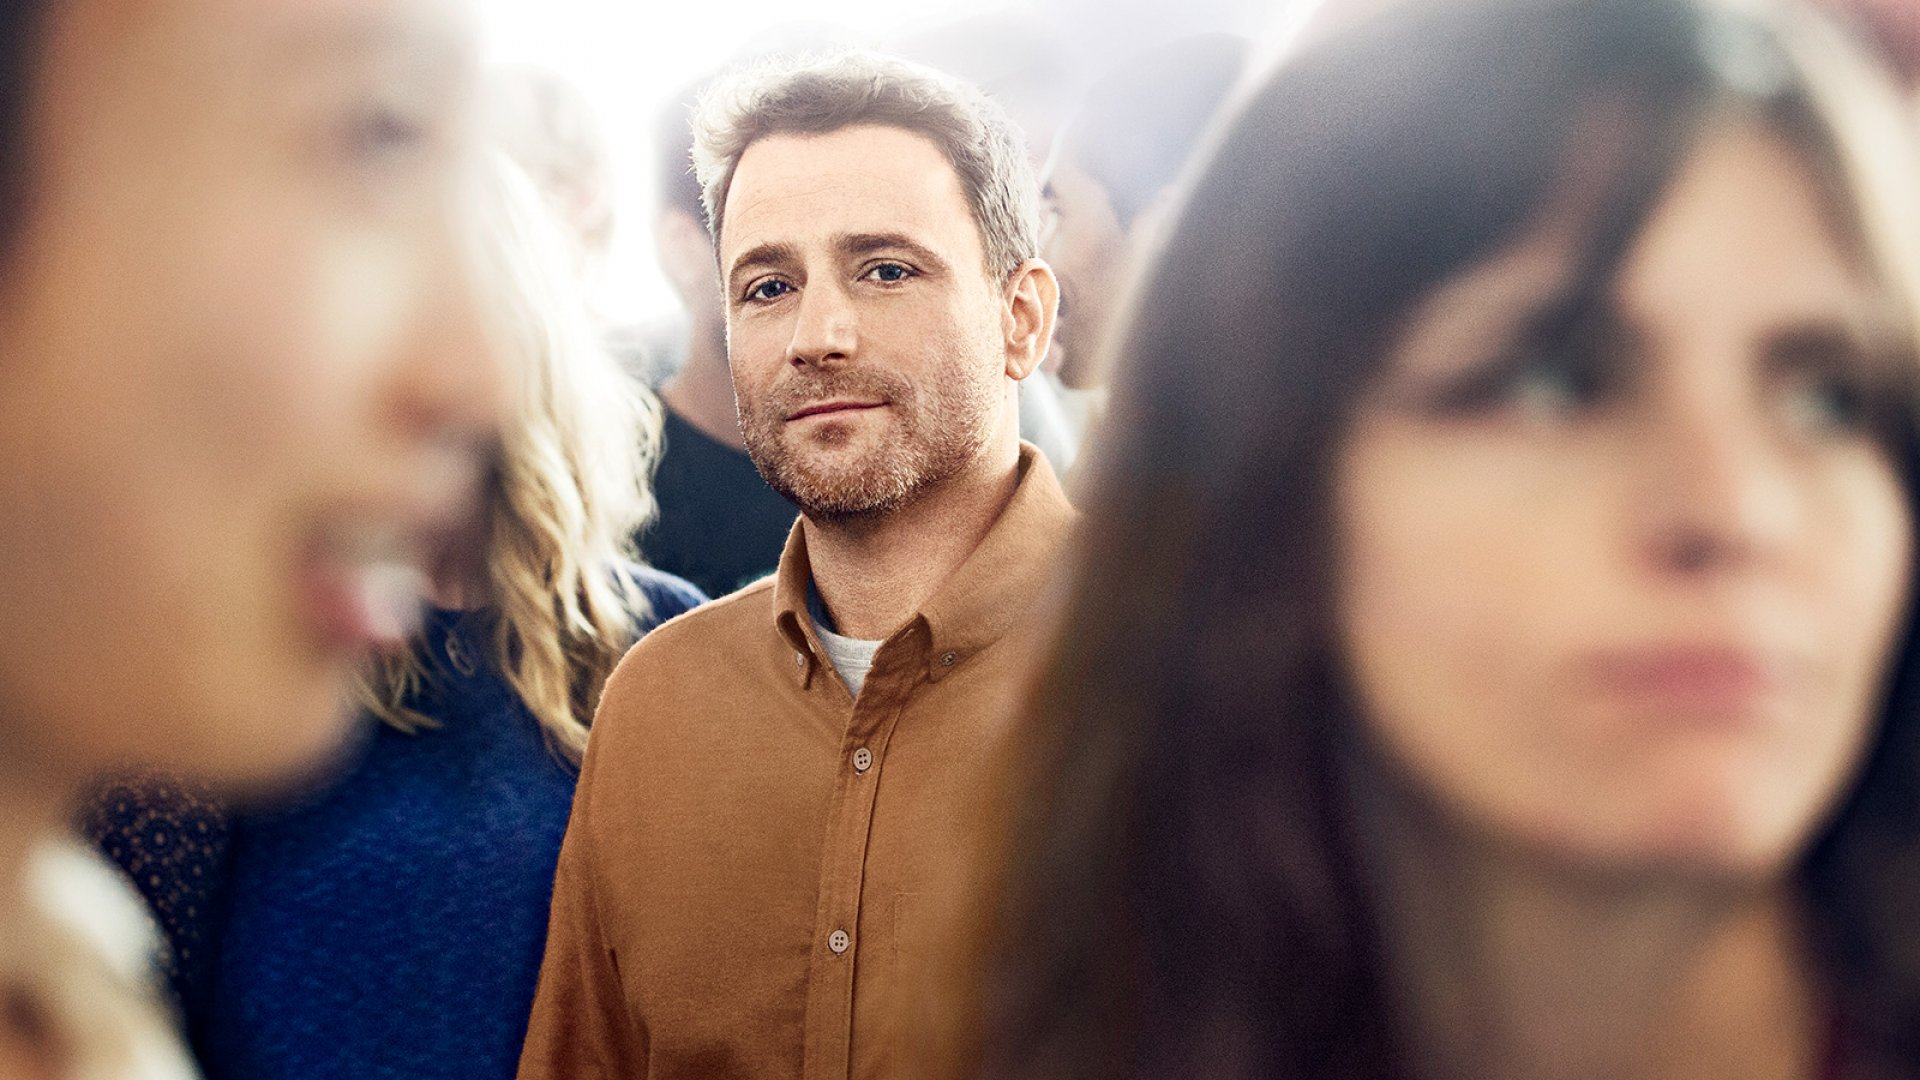 Stewart Butterfield built an idea into a $2.8 billion messaging software company in three years.